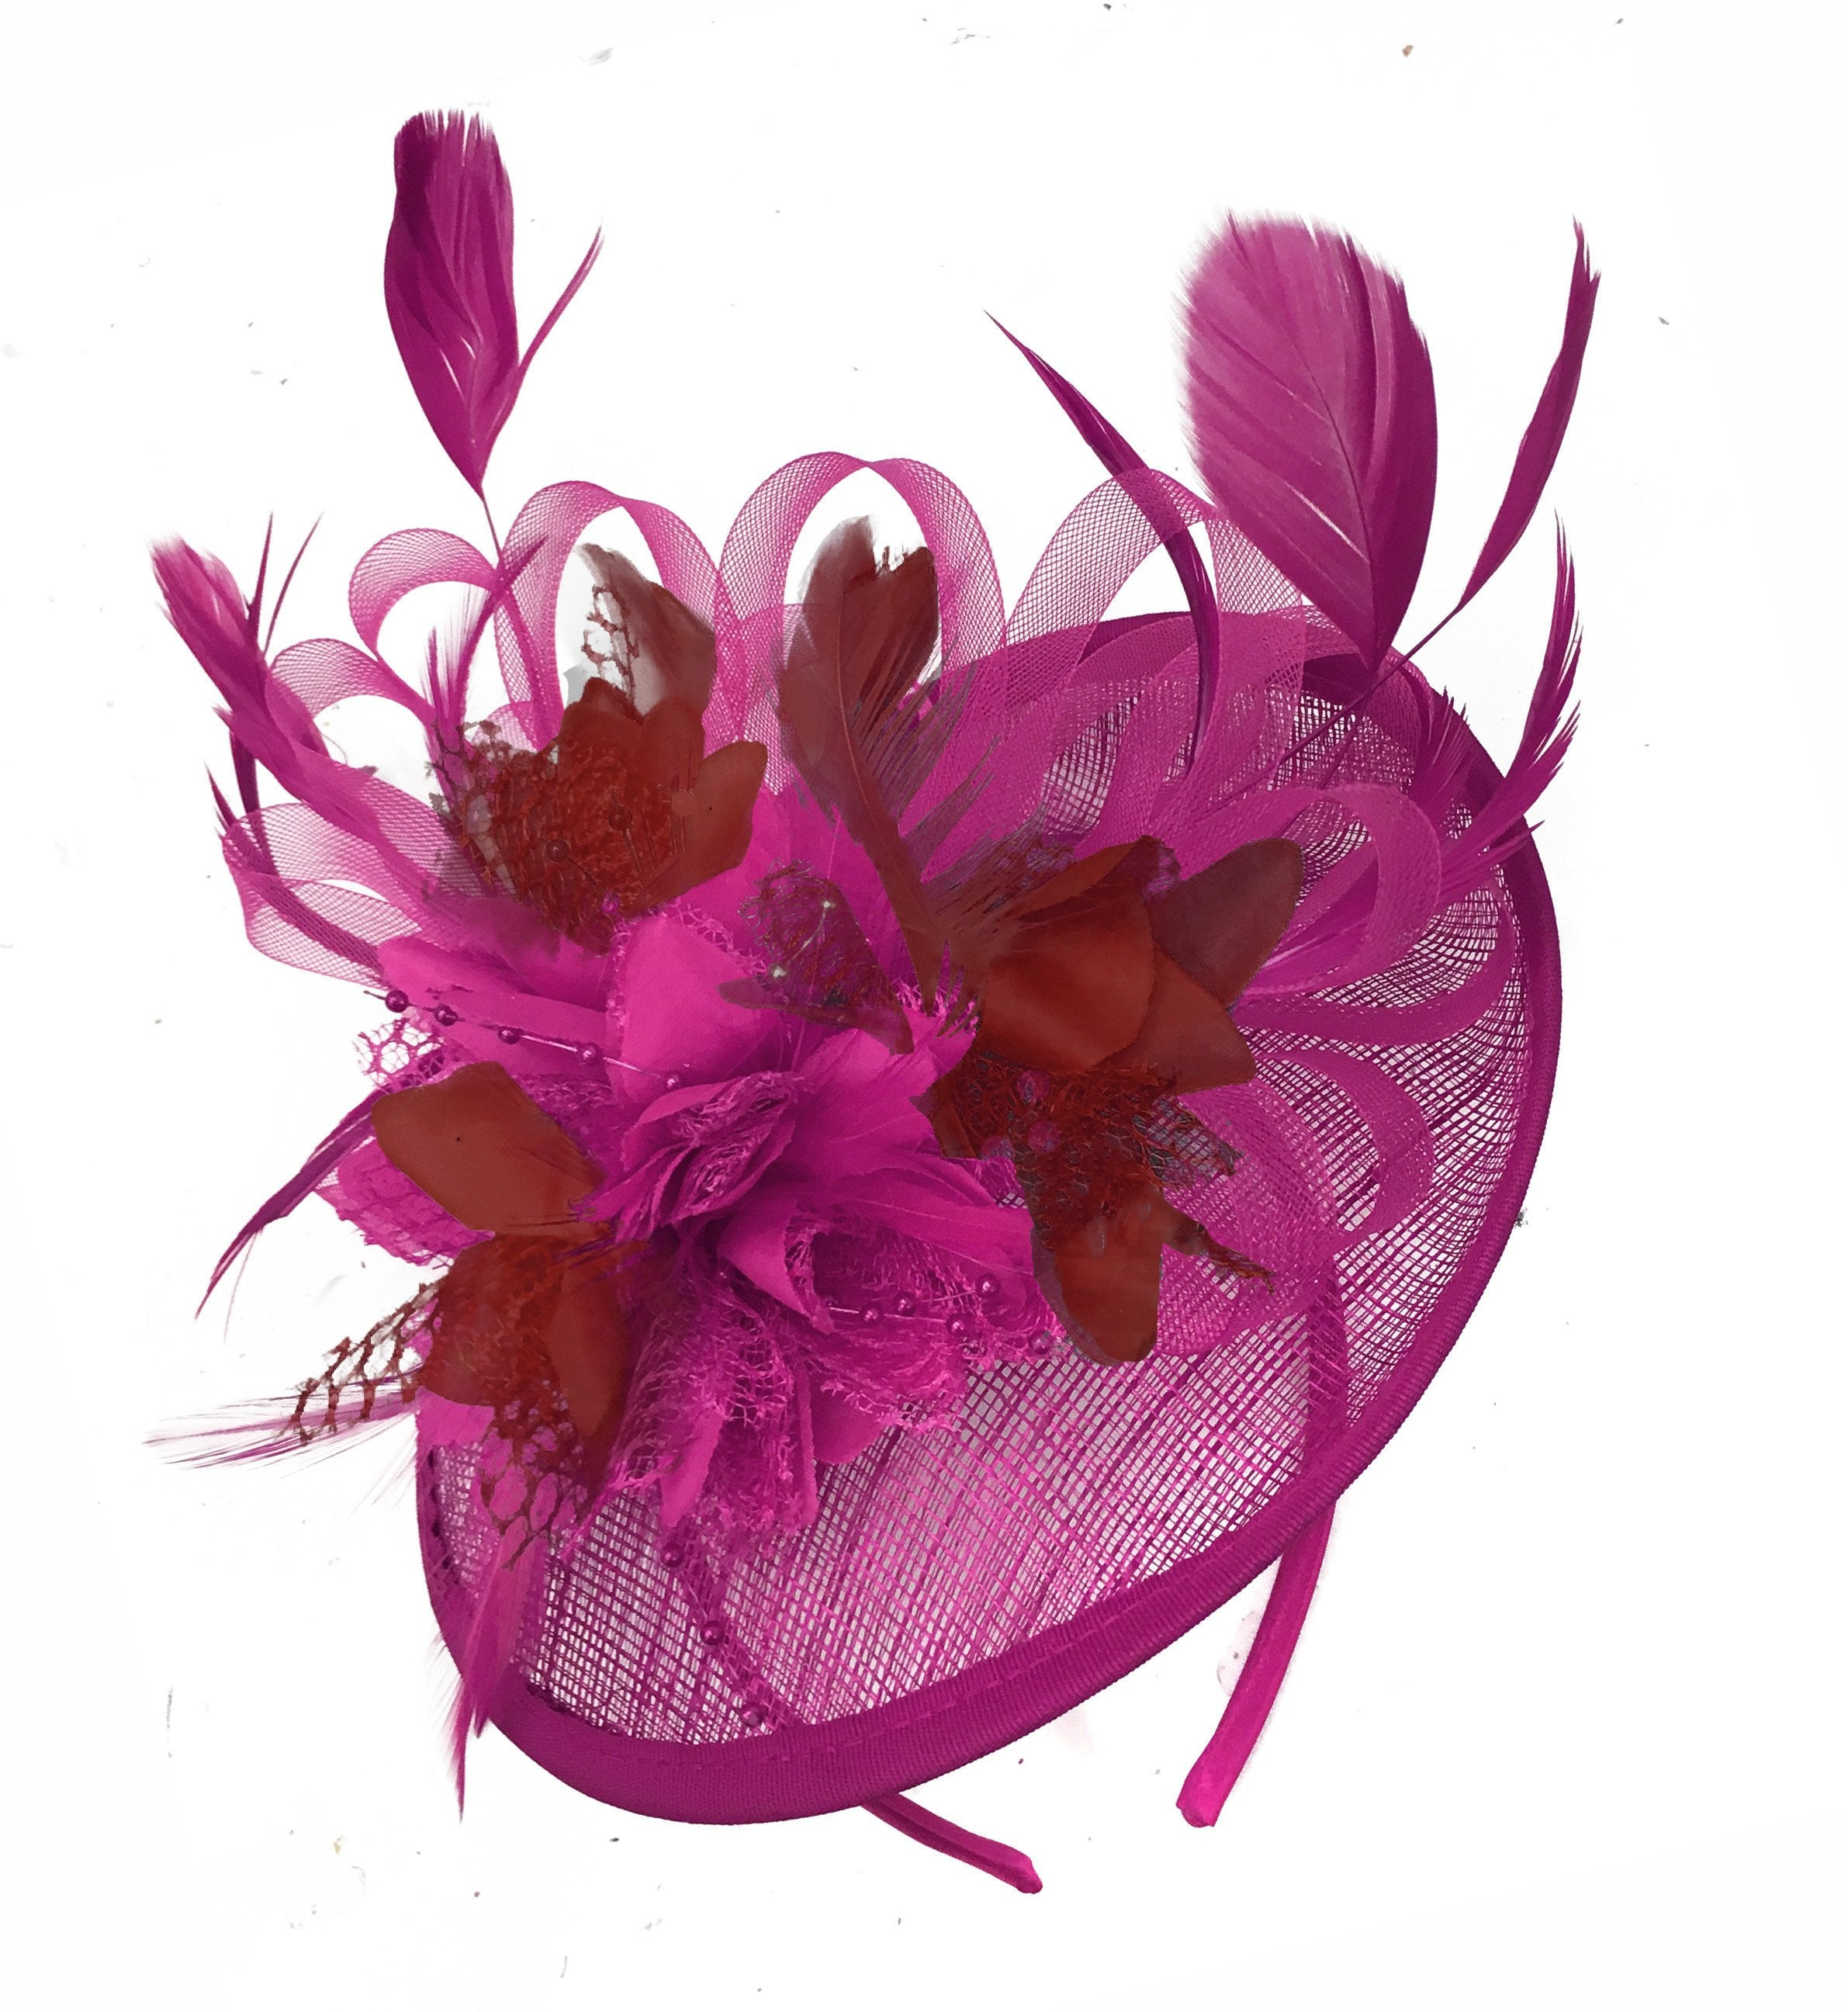 Caprilite Fuchsia Hot Pink and Burgundy Sinamay Disc Saucer Fascinator Hat for Women Weddings Headband